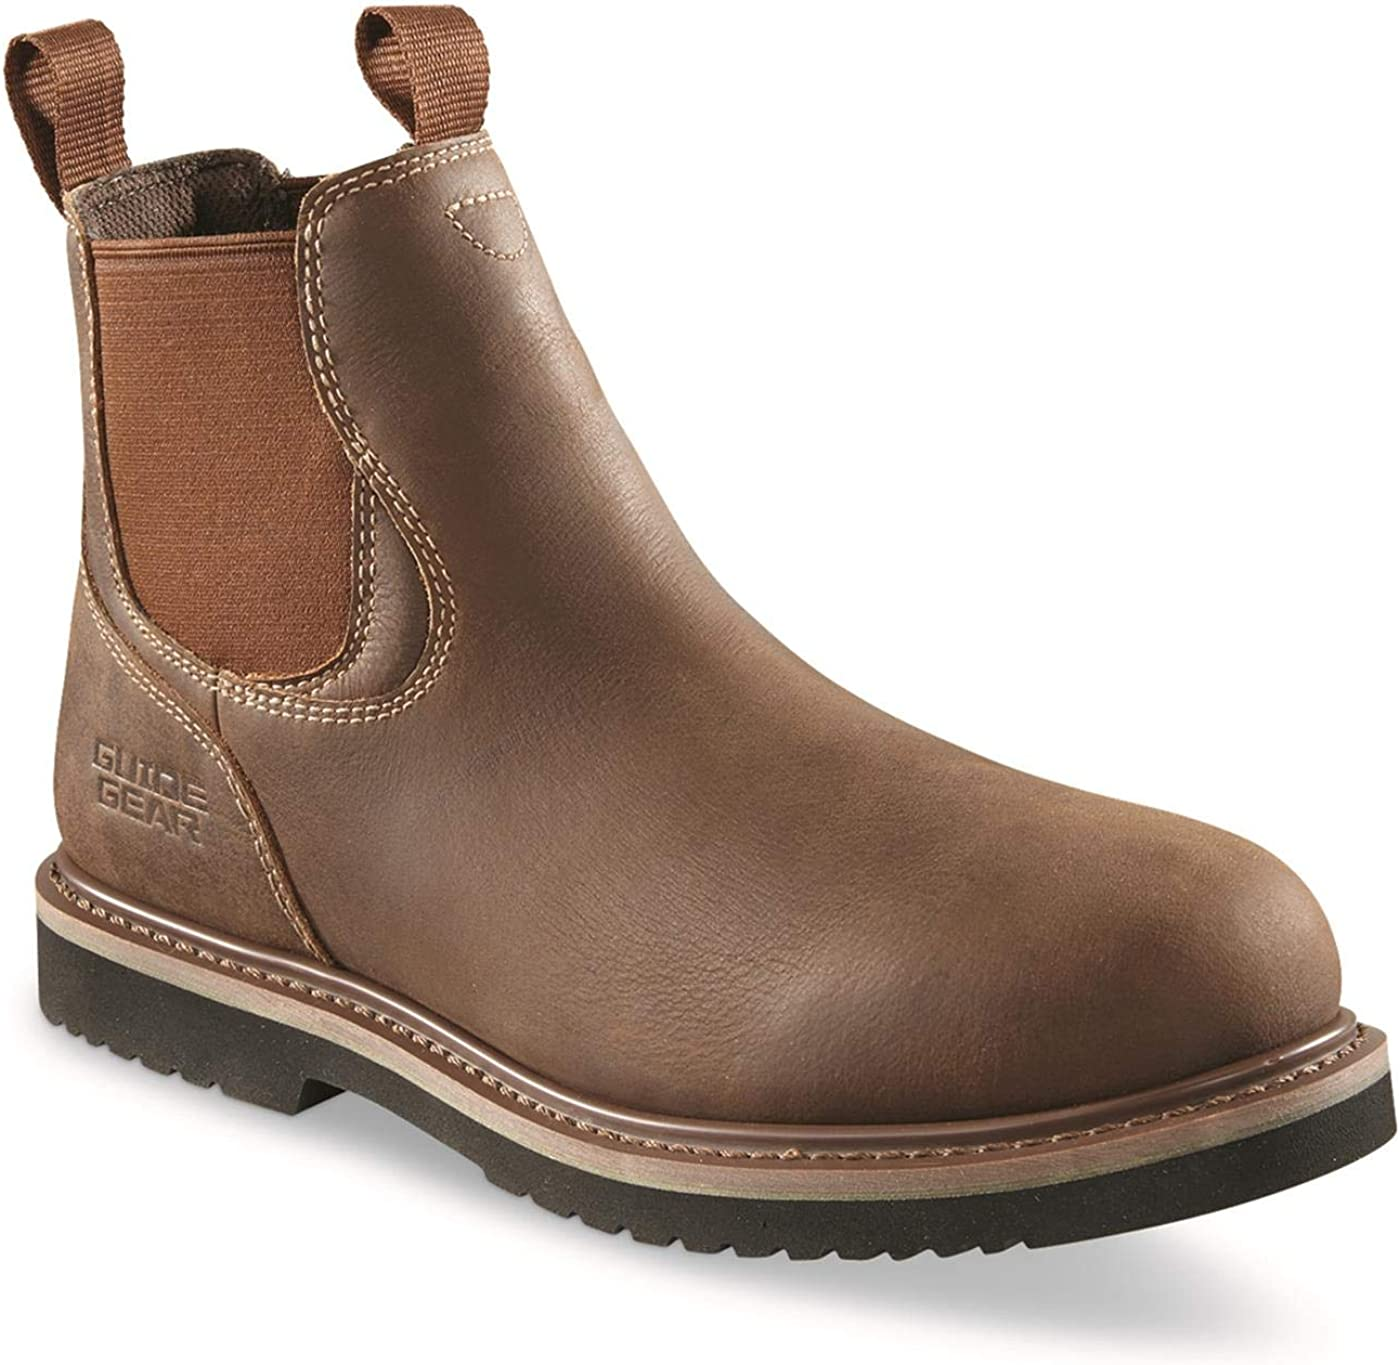 Field Series Romeo Work Boots: Shoes